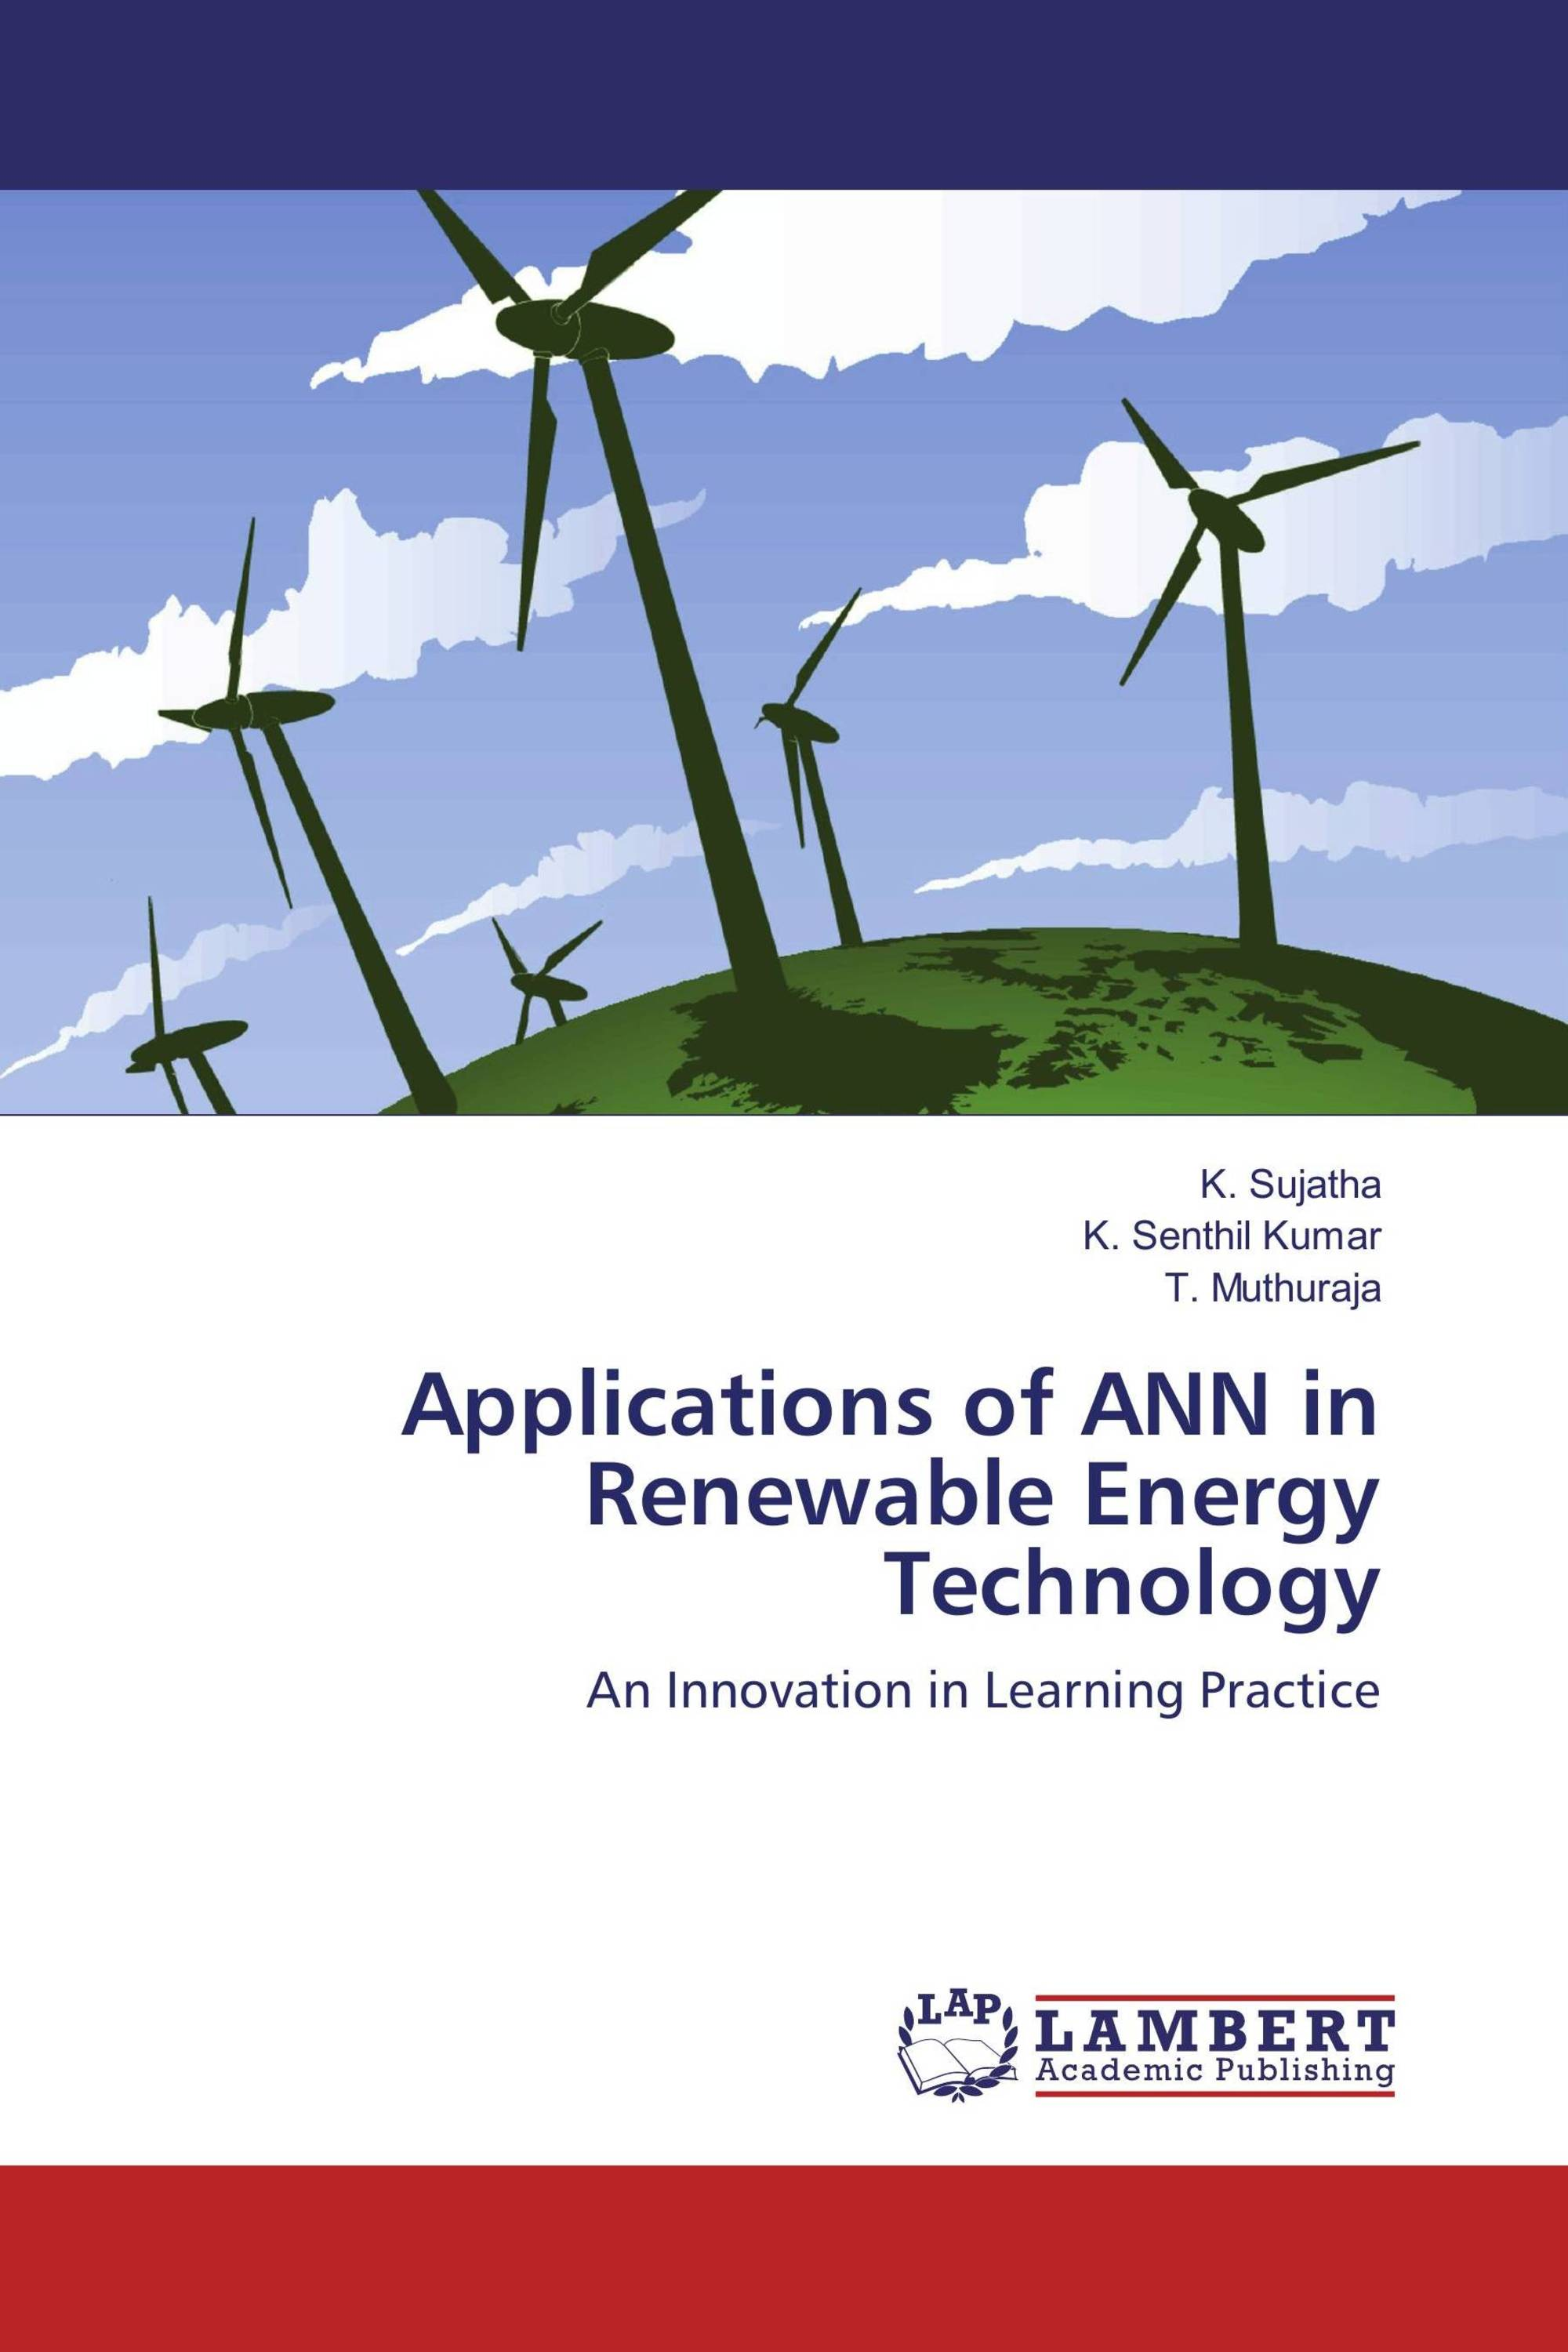 Applications of ANN in Renewable Energy Technology 978 620 2